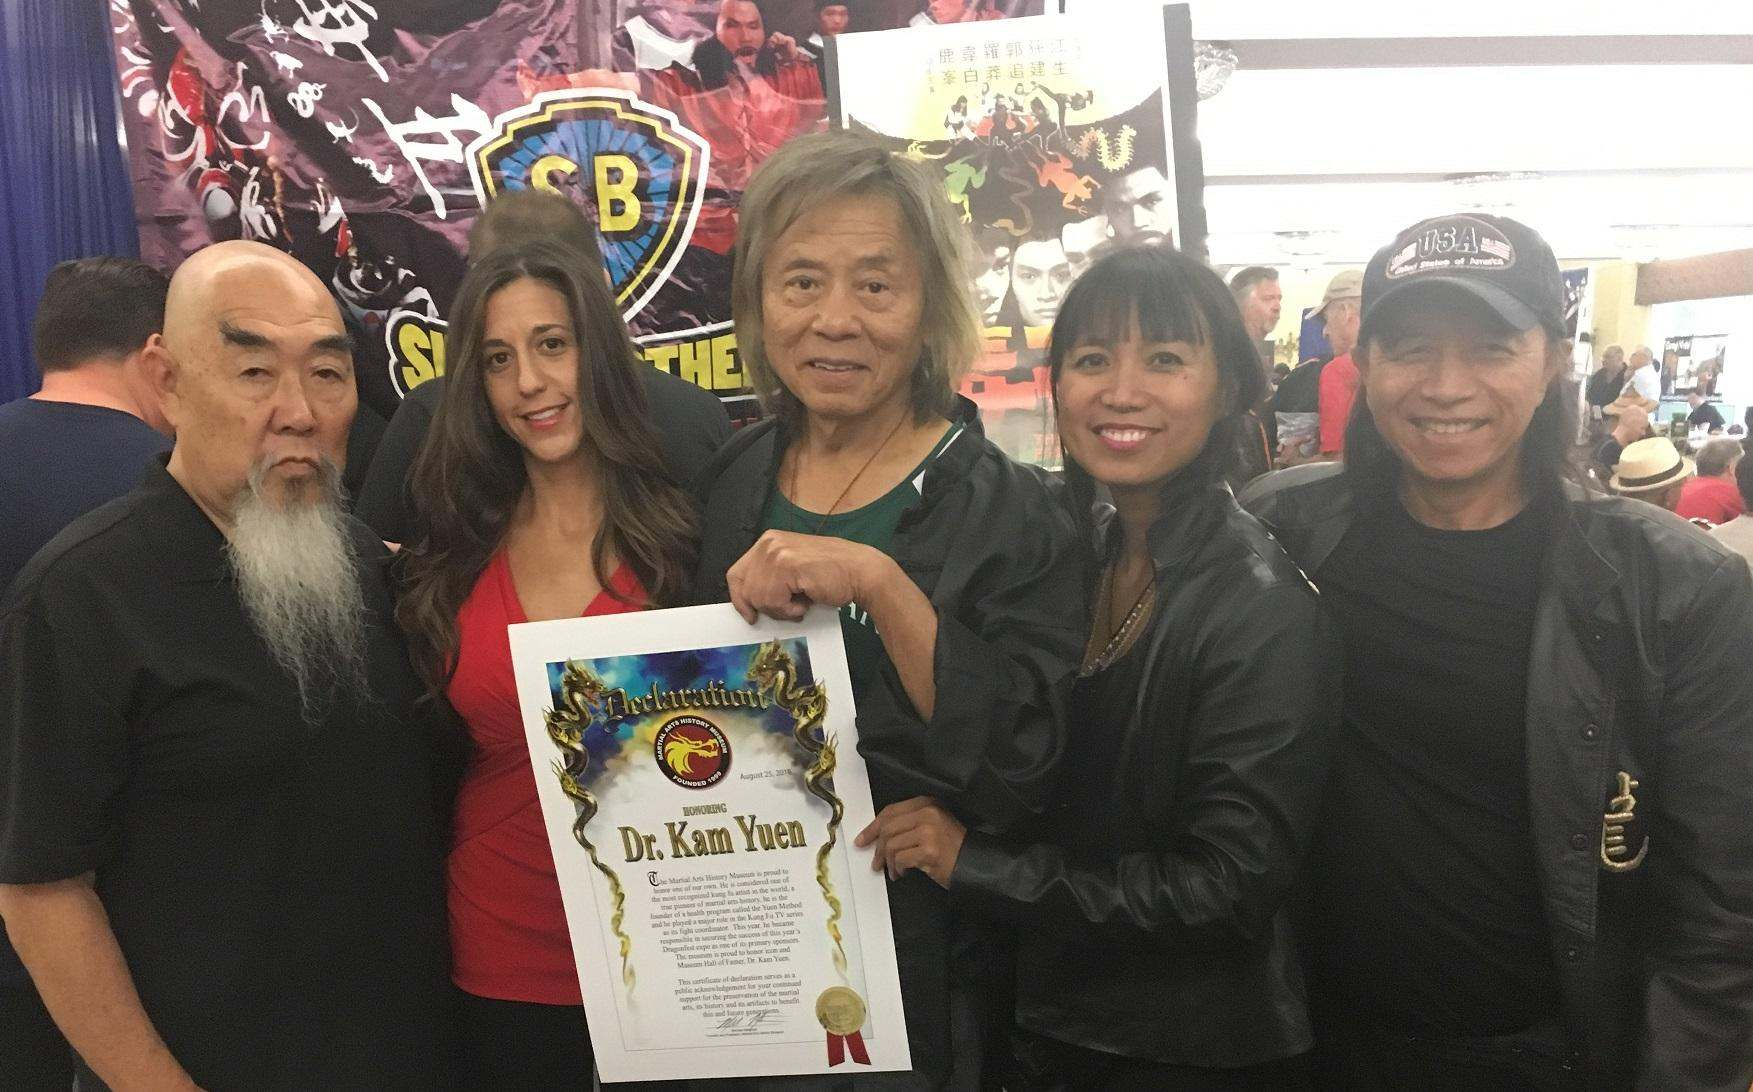 Gerald Okamura, Marnie Greenberg, Dr Kam Yuen, KIck ass woman, and other ​Lee